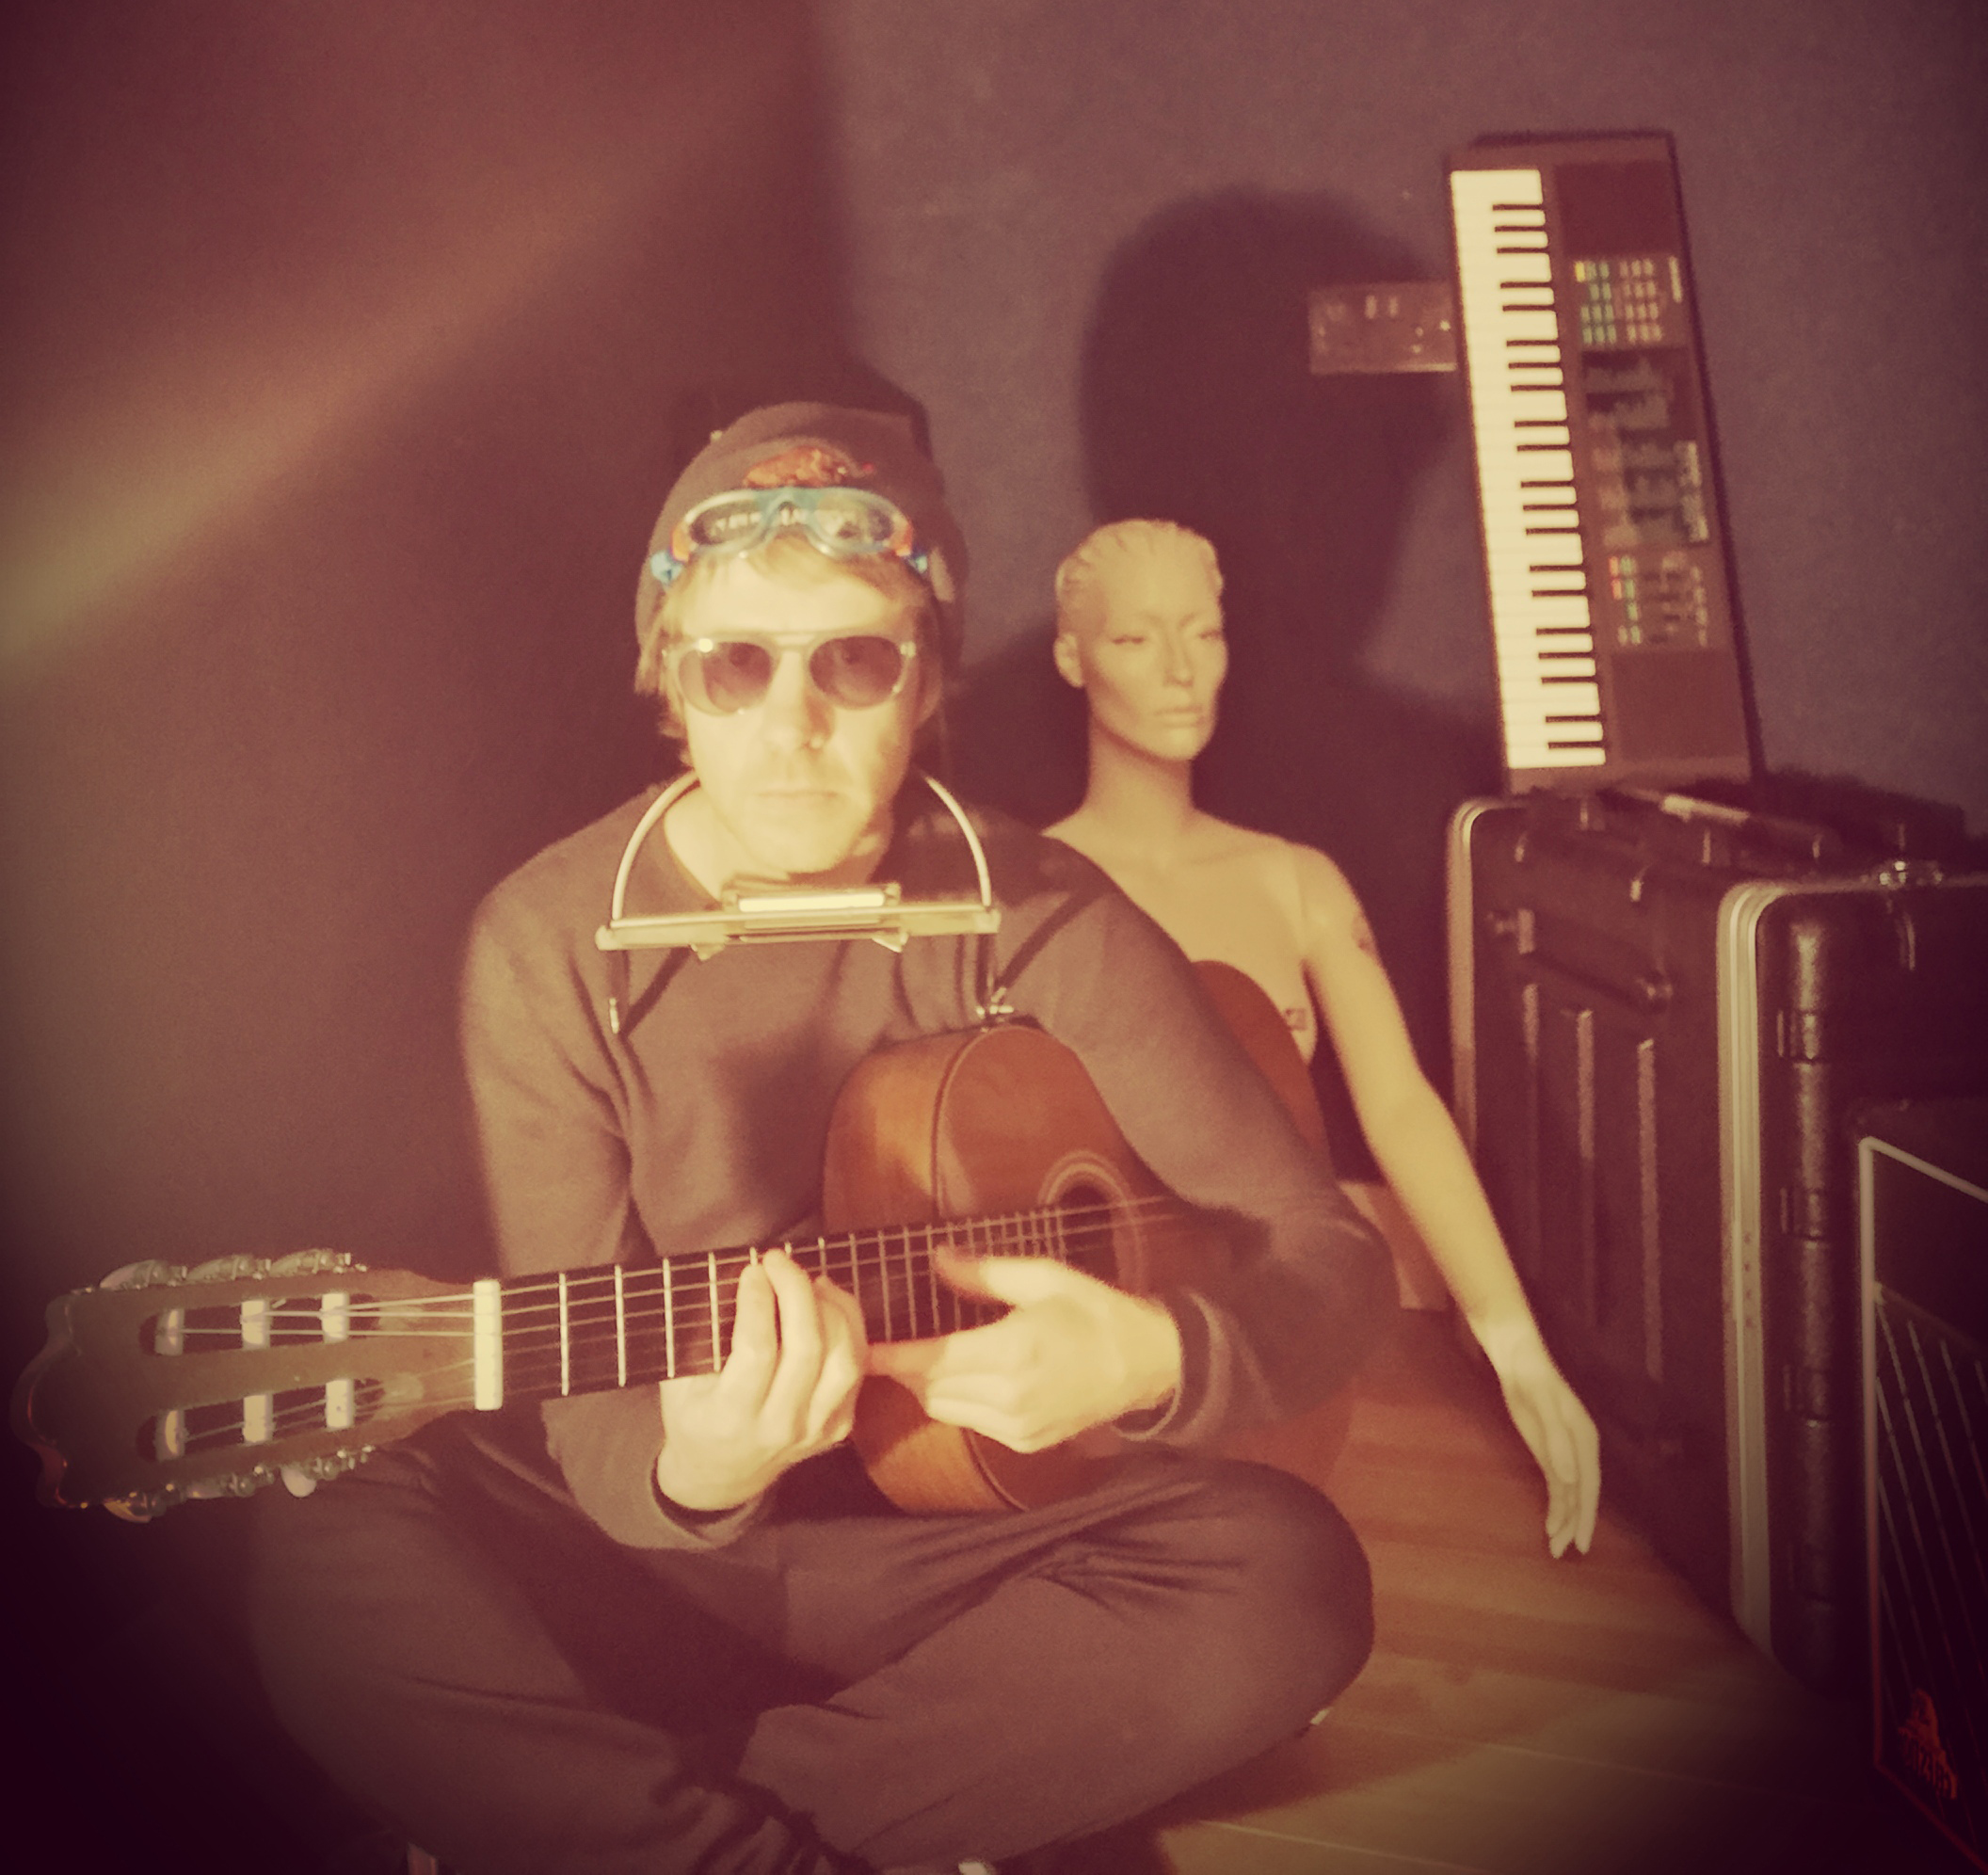 """INTERVIEW: """"I Finally Consider Myself A Songwriter Now"""" says Malojian's STEVIE SCULLION on the release of Humm"""